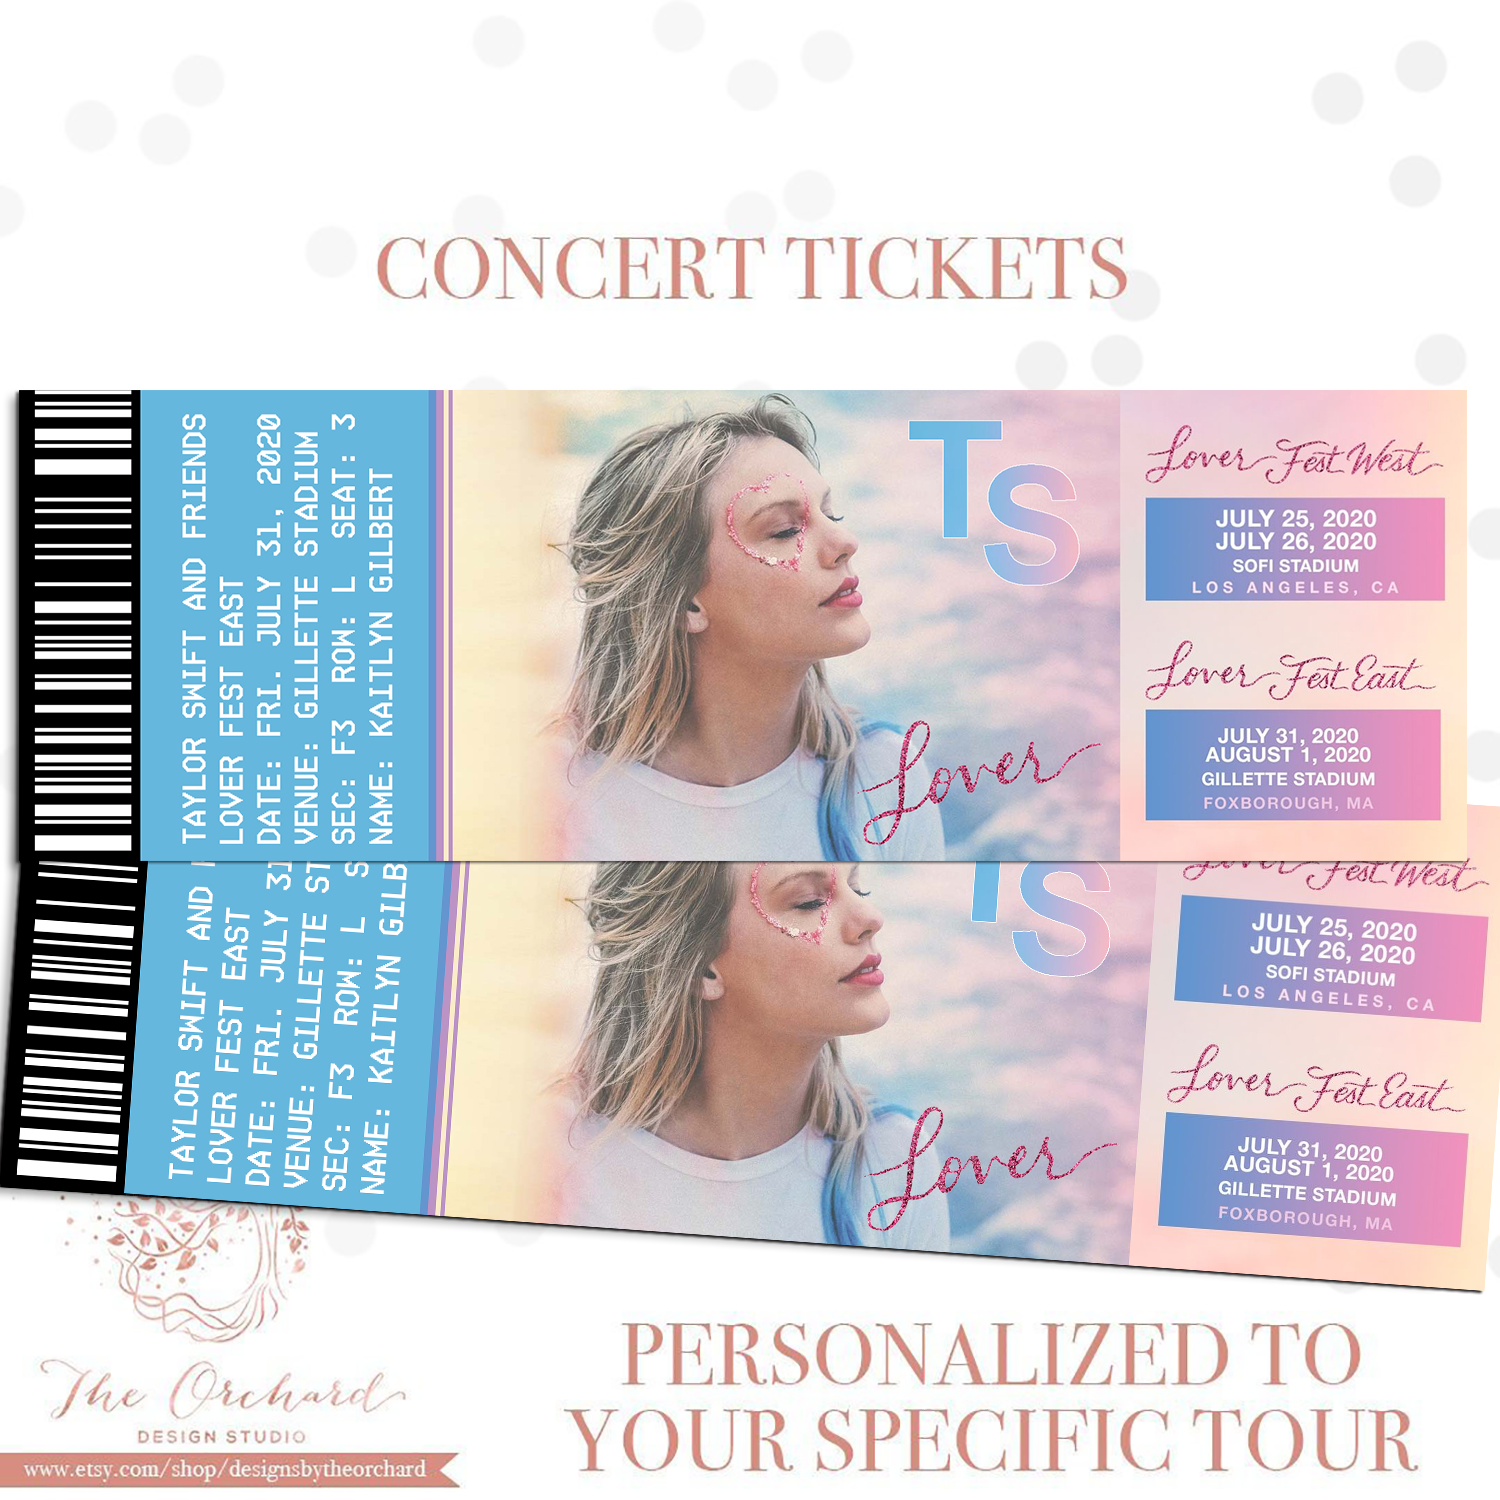 Custom Event Tickets You Self Print Sports Concert Music Etsy Taylor Swift Tickets Concert Tickets Concert Gift Ideas